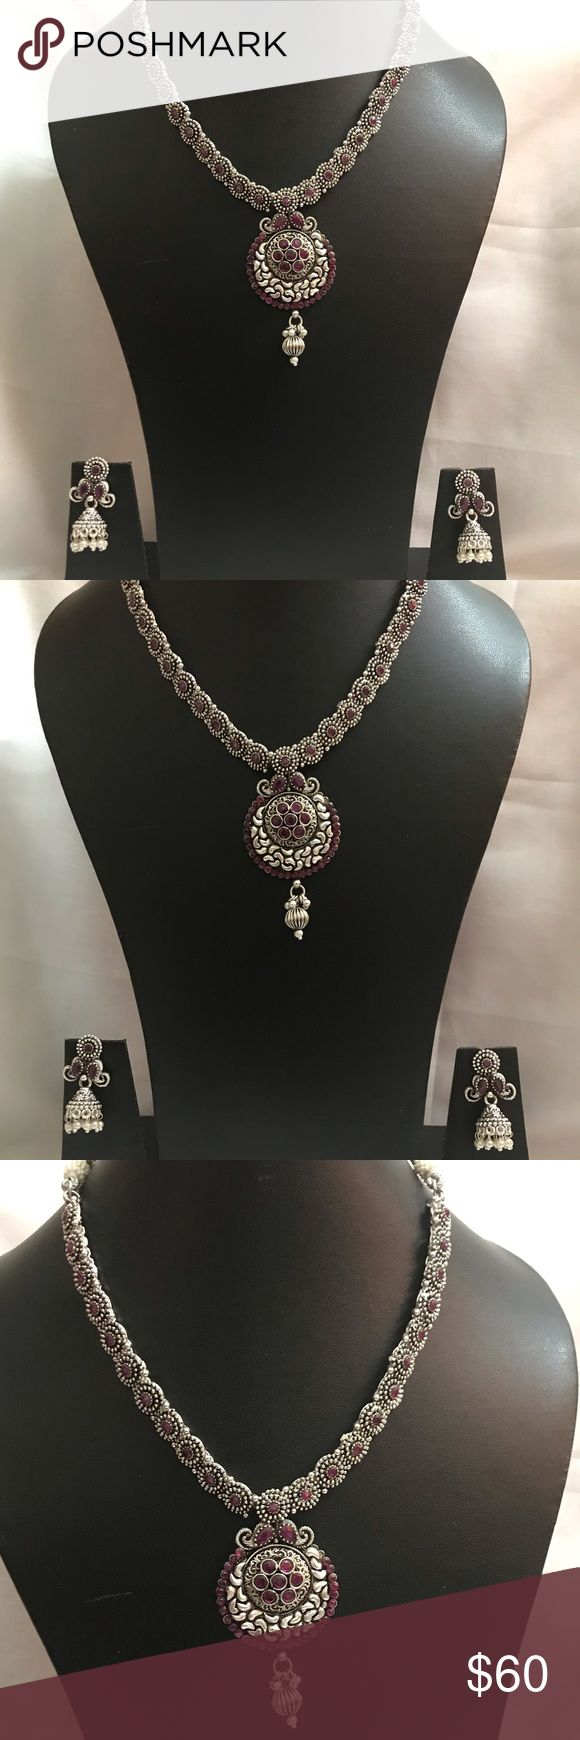 Stunning Traditional Oxidized Ruby Necklace This i…